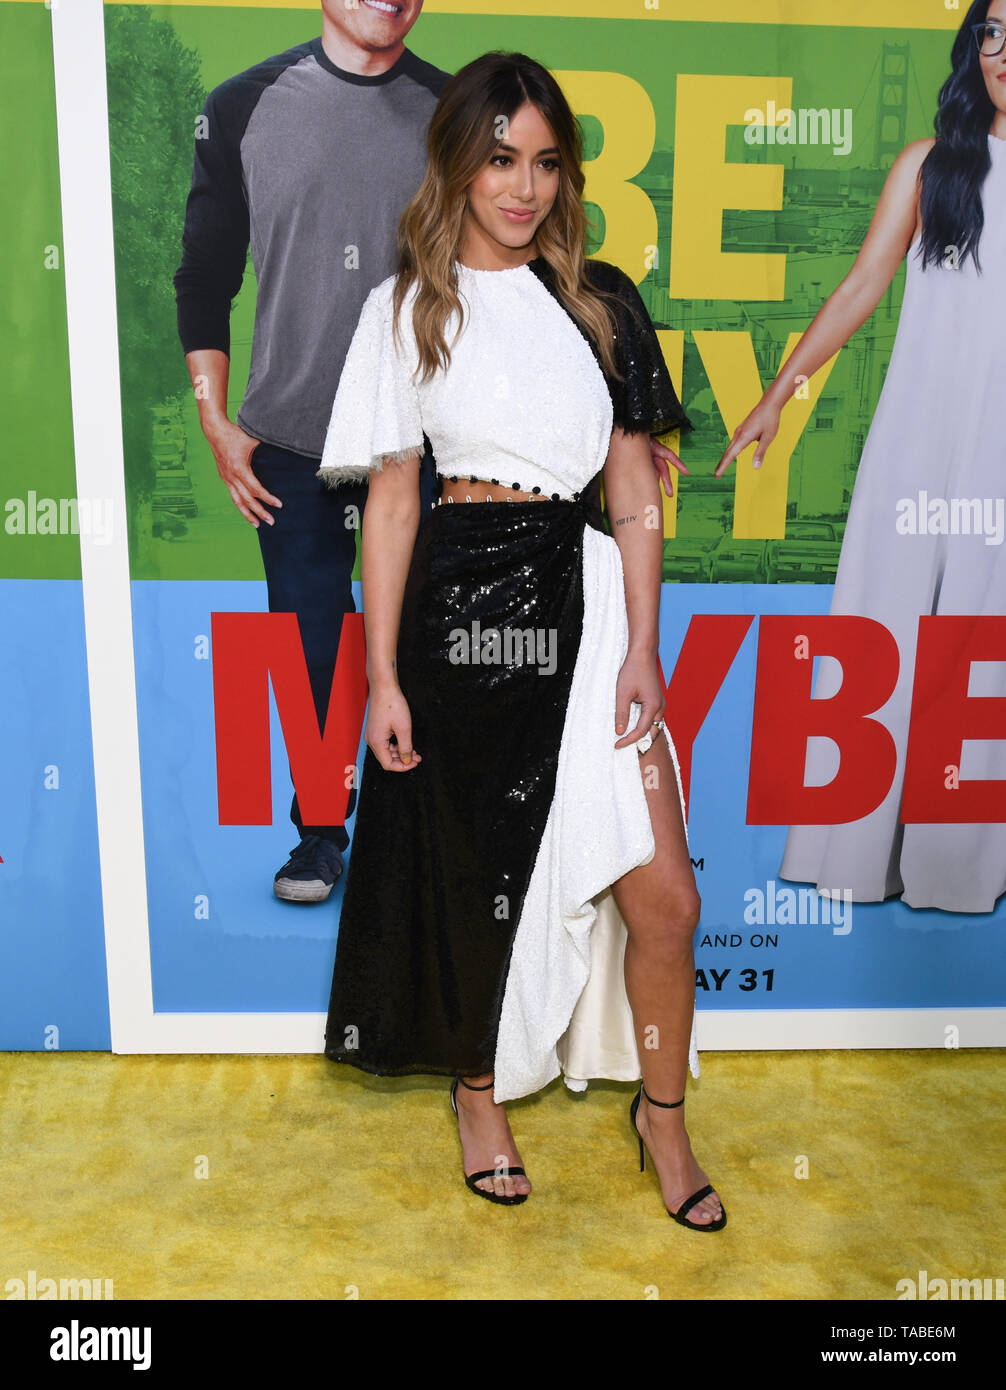 May 22, 2019 - Westwood Village, California, USA - 22, May 2019 - Westwood Village, California. Chloe Bennet attends Netflix Premiere of 'Always Be My Maybe' at the Regency Village Theatre. (Credit Image: © Billy BennightZUMA Wire) Stock Photo